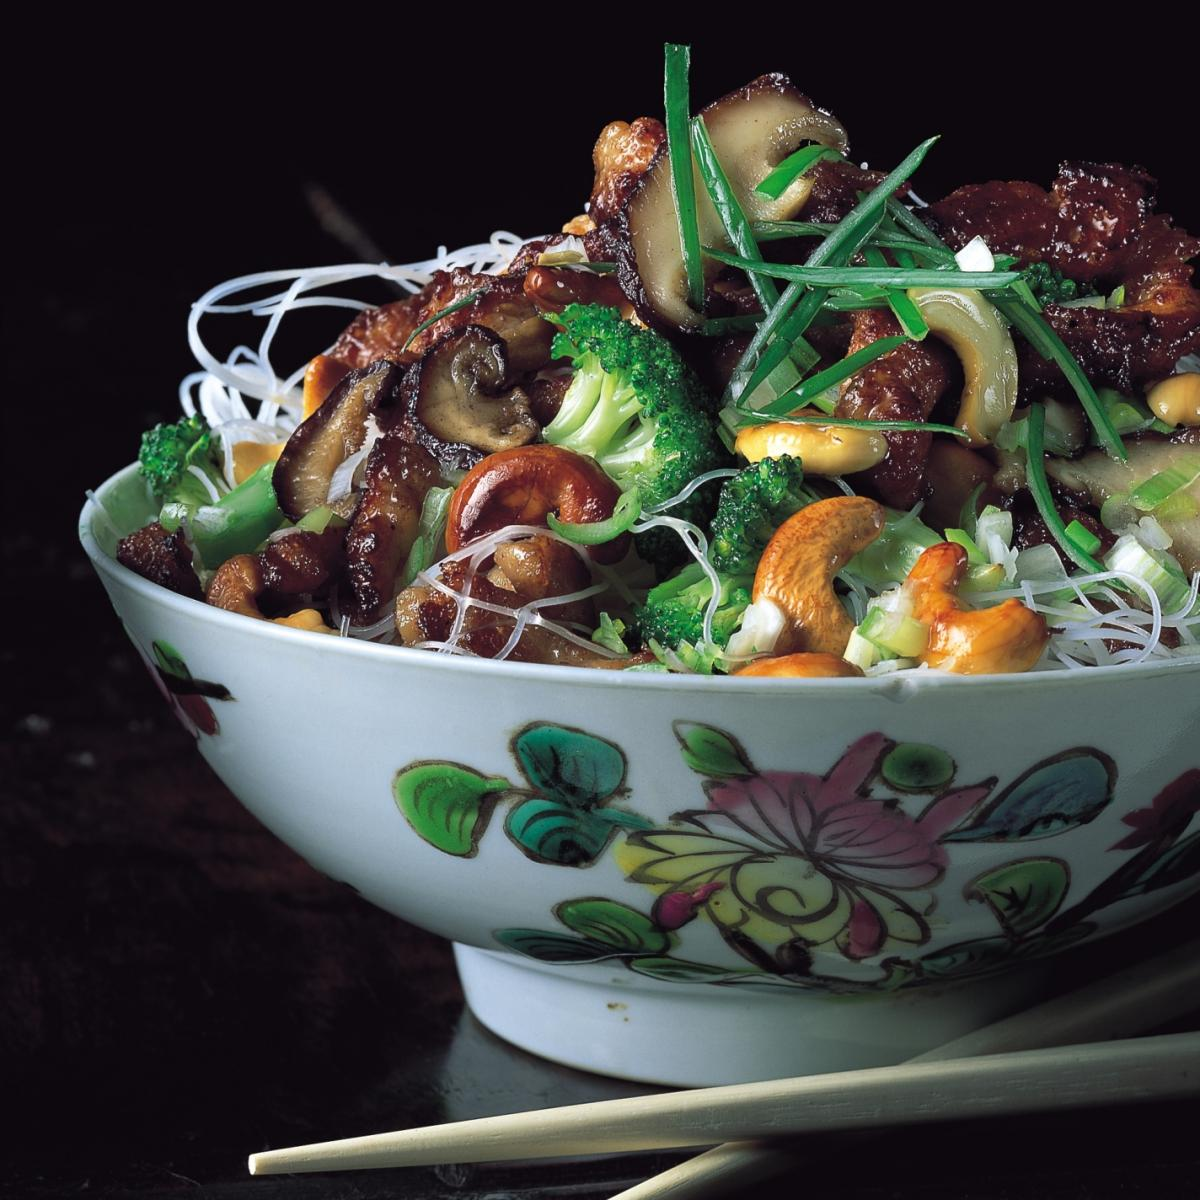 A picture of Delia's Oriental Chicken Stir-fry with Broccoli, Cashew Nuts recipe